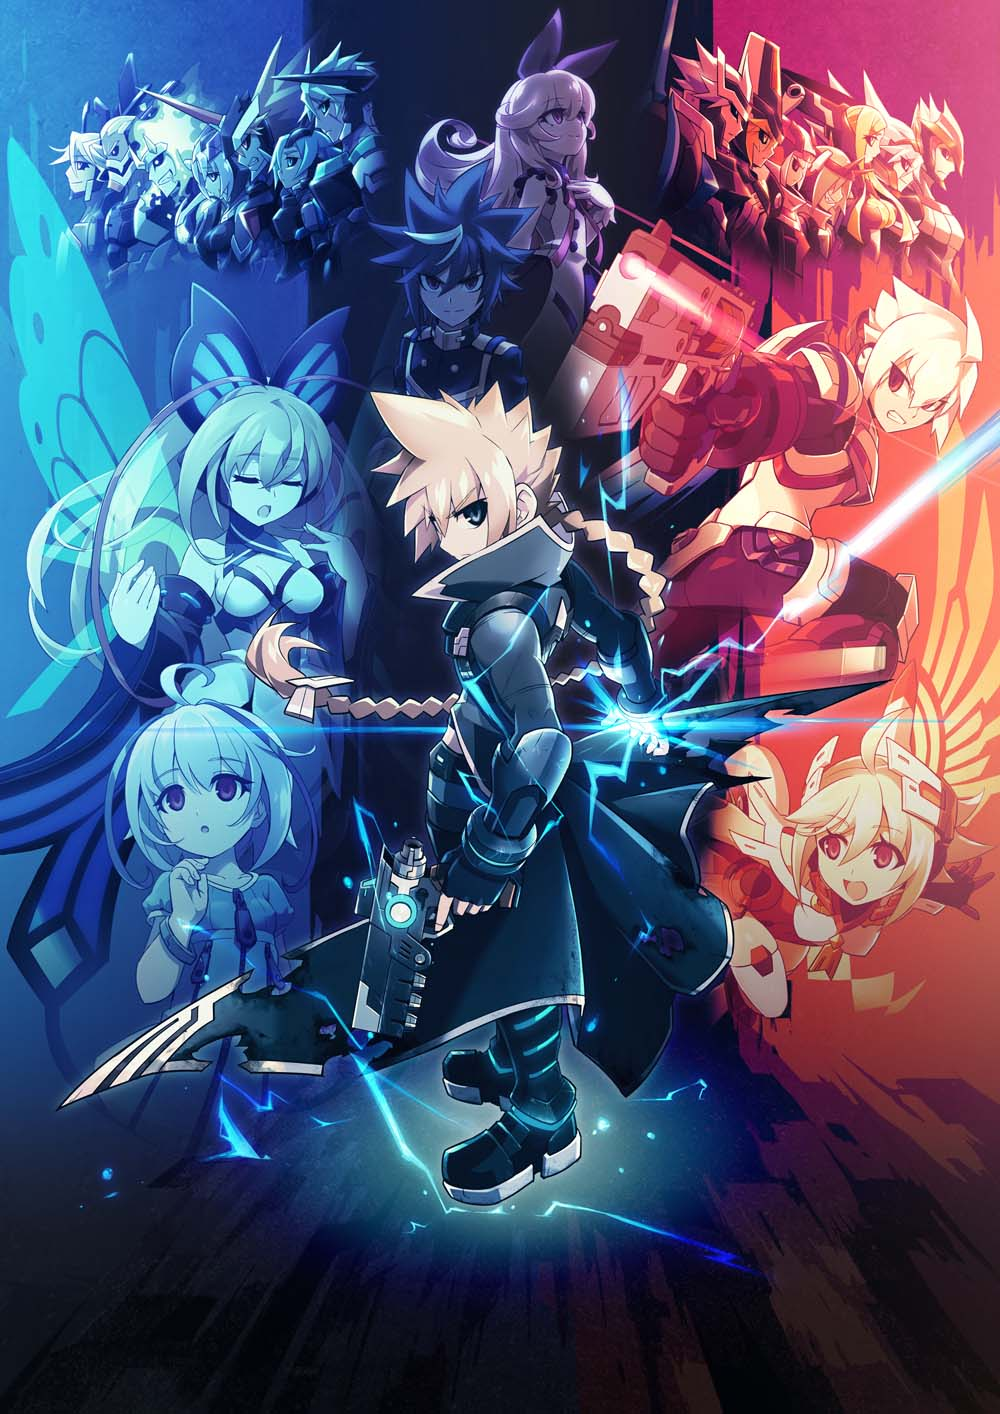 http://www.perfectly-nintendo.com/wp-content/gallery/azure-striker-gunvolt-striker-pack-20-05-2017/043.jpg